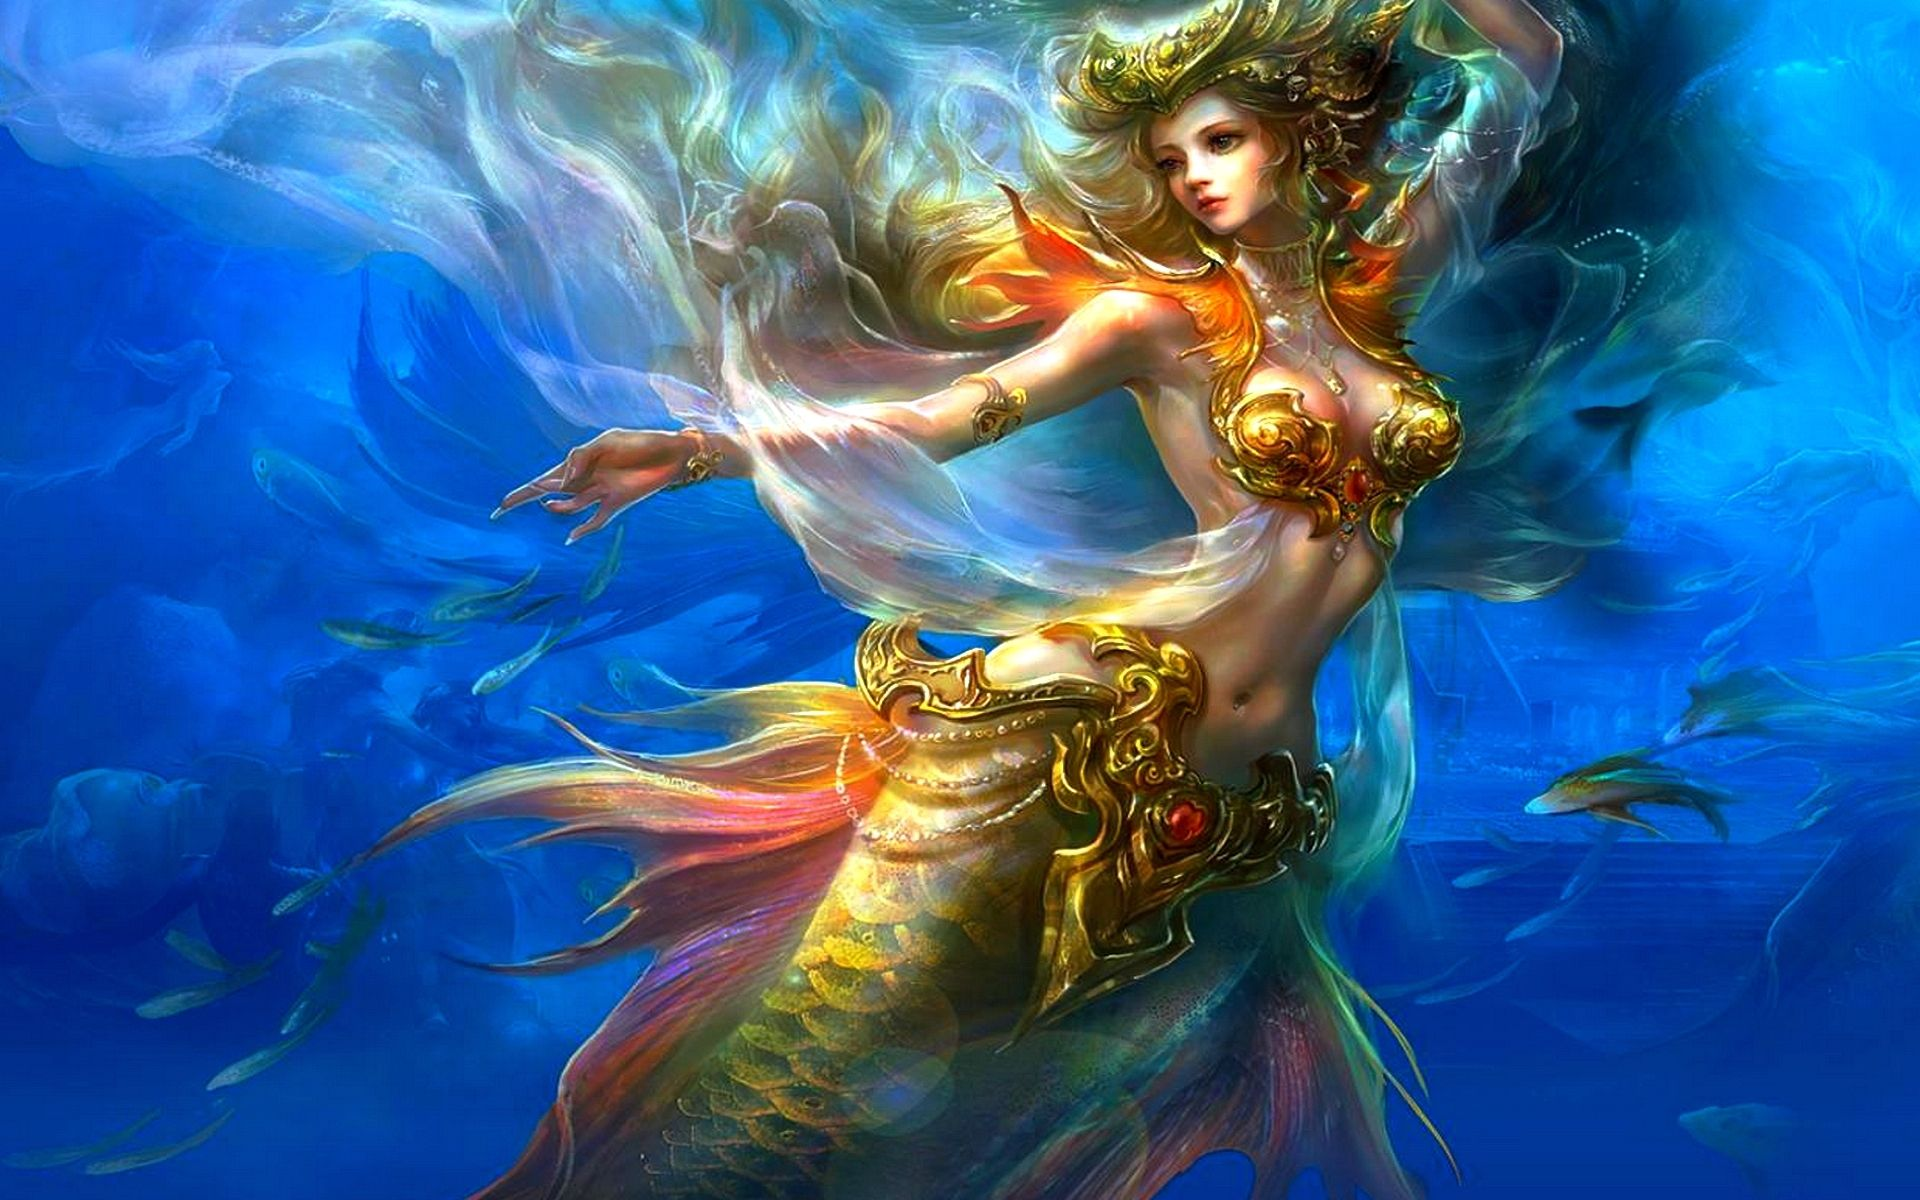 pic of mermaids download a real mermaid wallpaper 89245 crafts